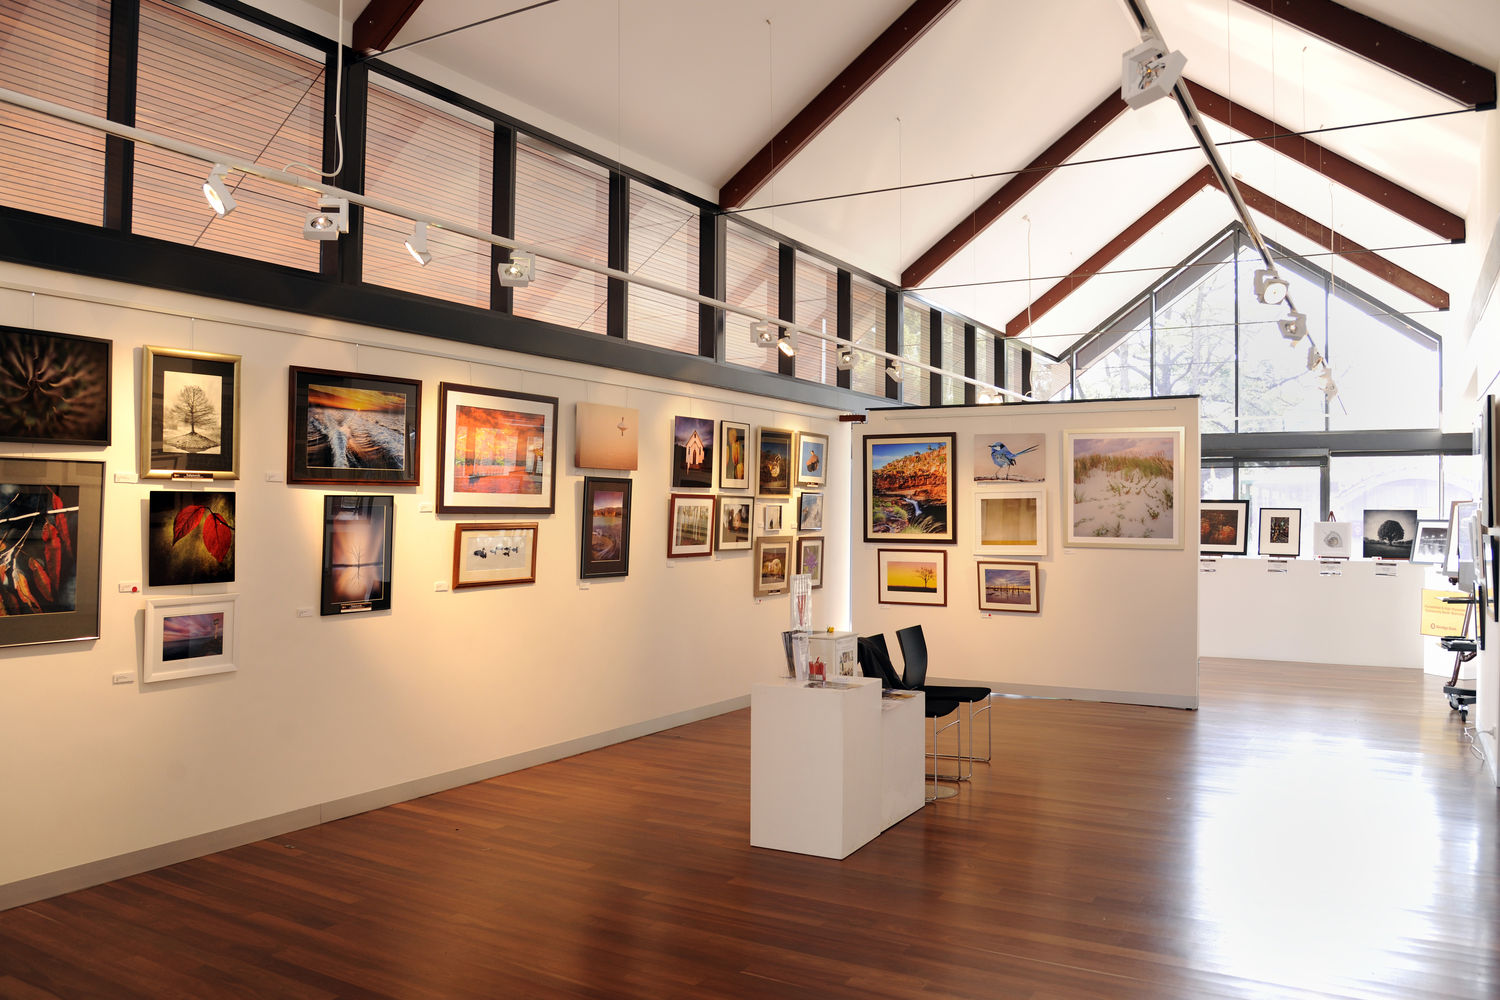 Interior View of the Zig Zag Gallery during one of the exhibitions